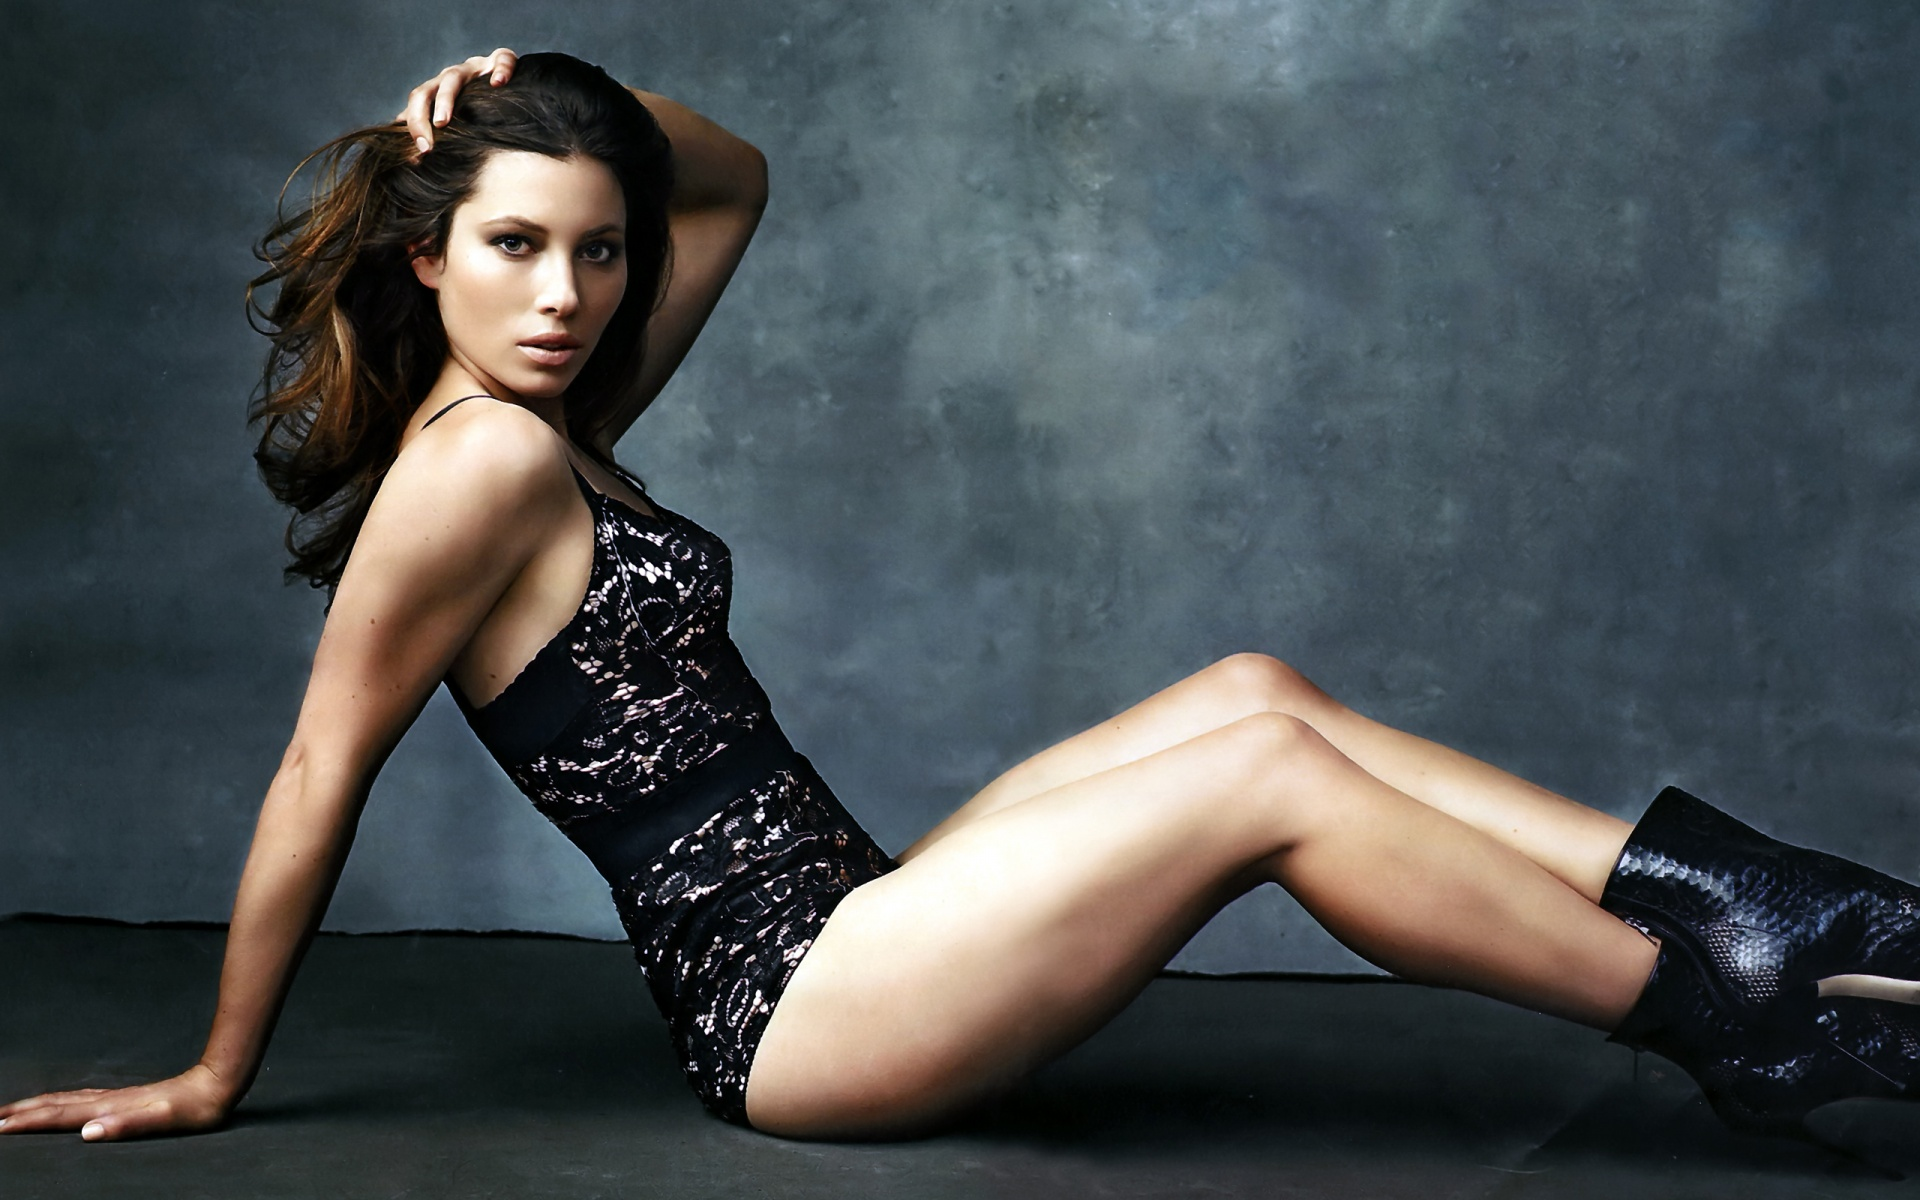 jessica-biel-in-black-dress-2-1920x1200